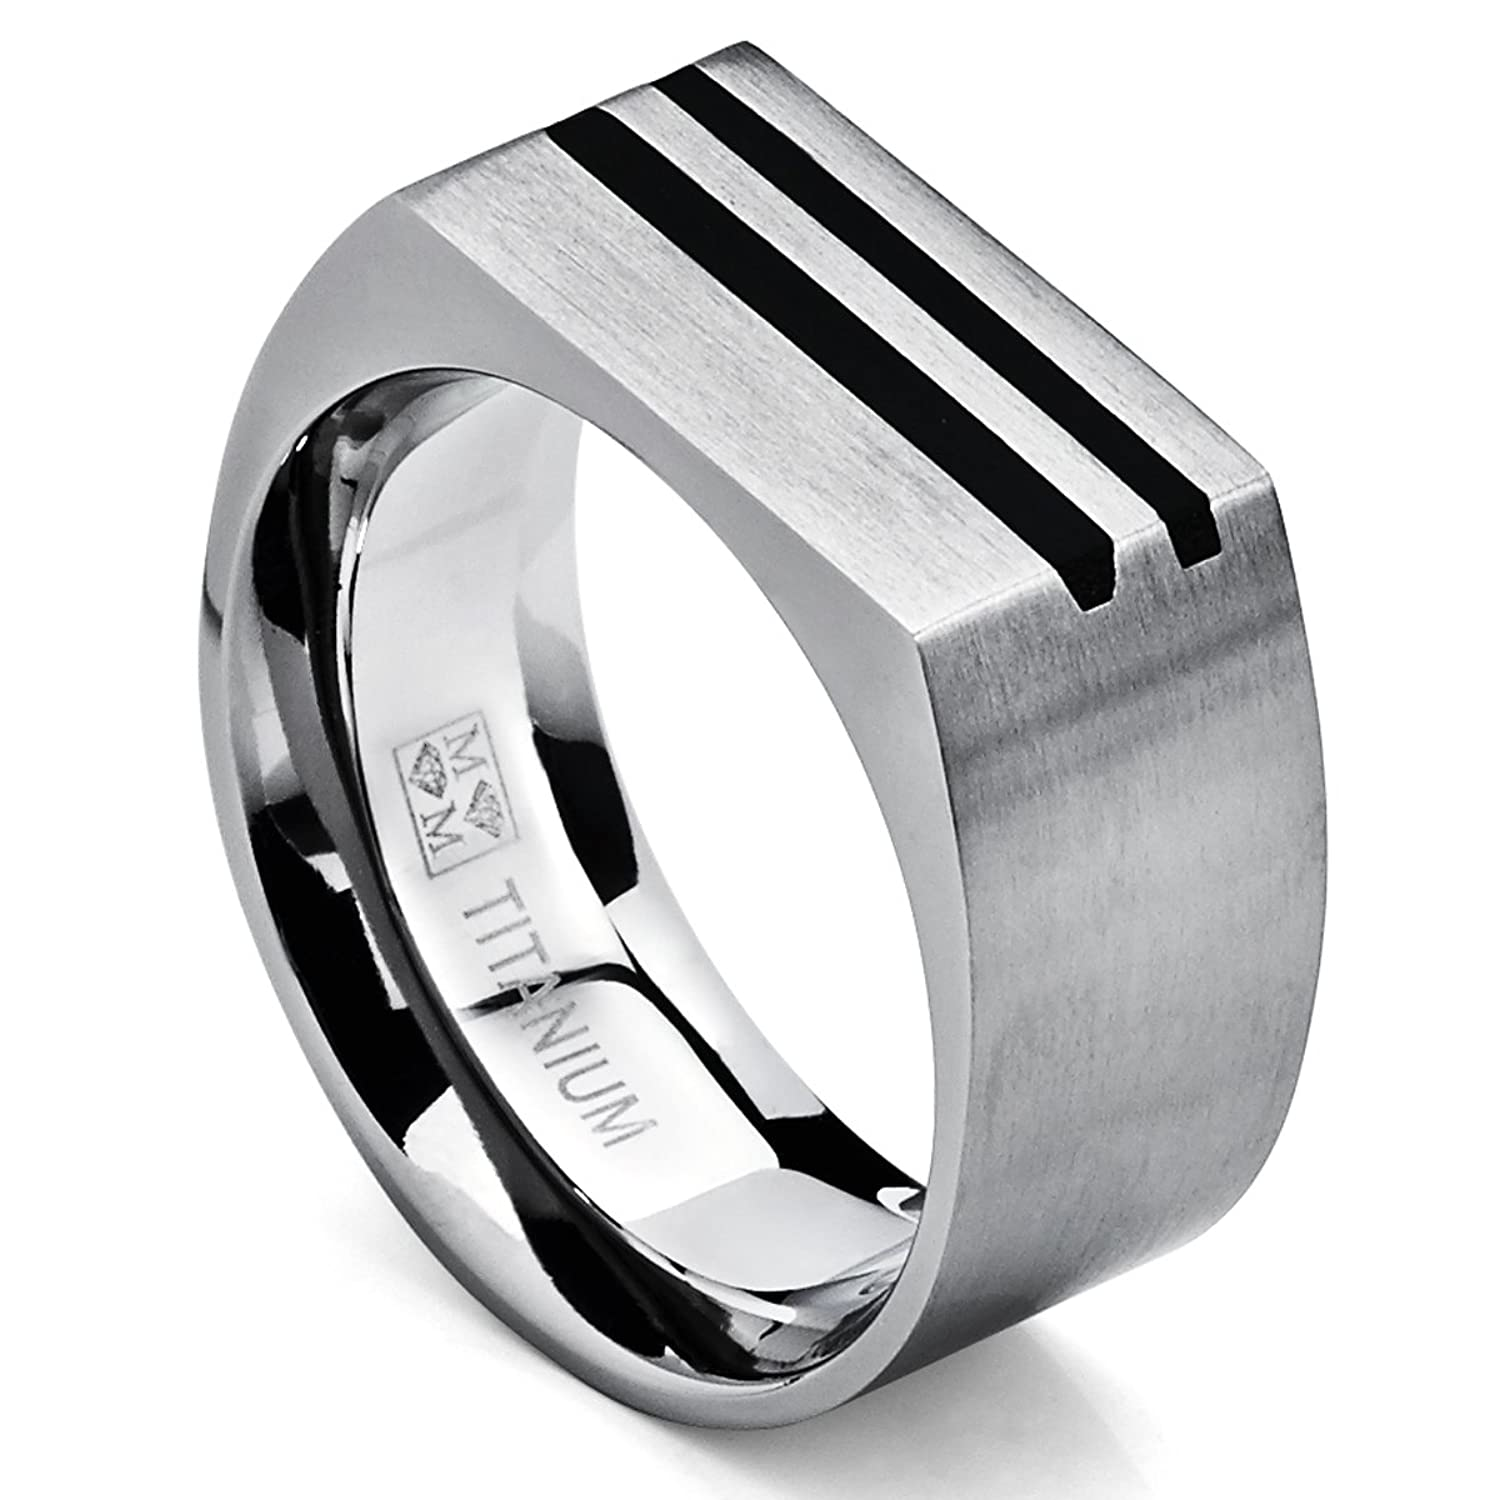 with i ring unisex engagement jewellery uk mens love titanium dp band besttohave you co amazon engraved bands wedding